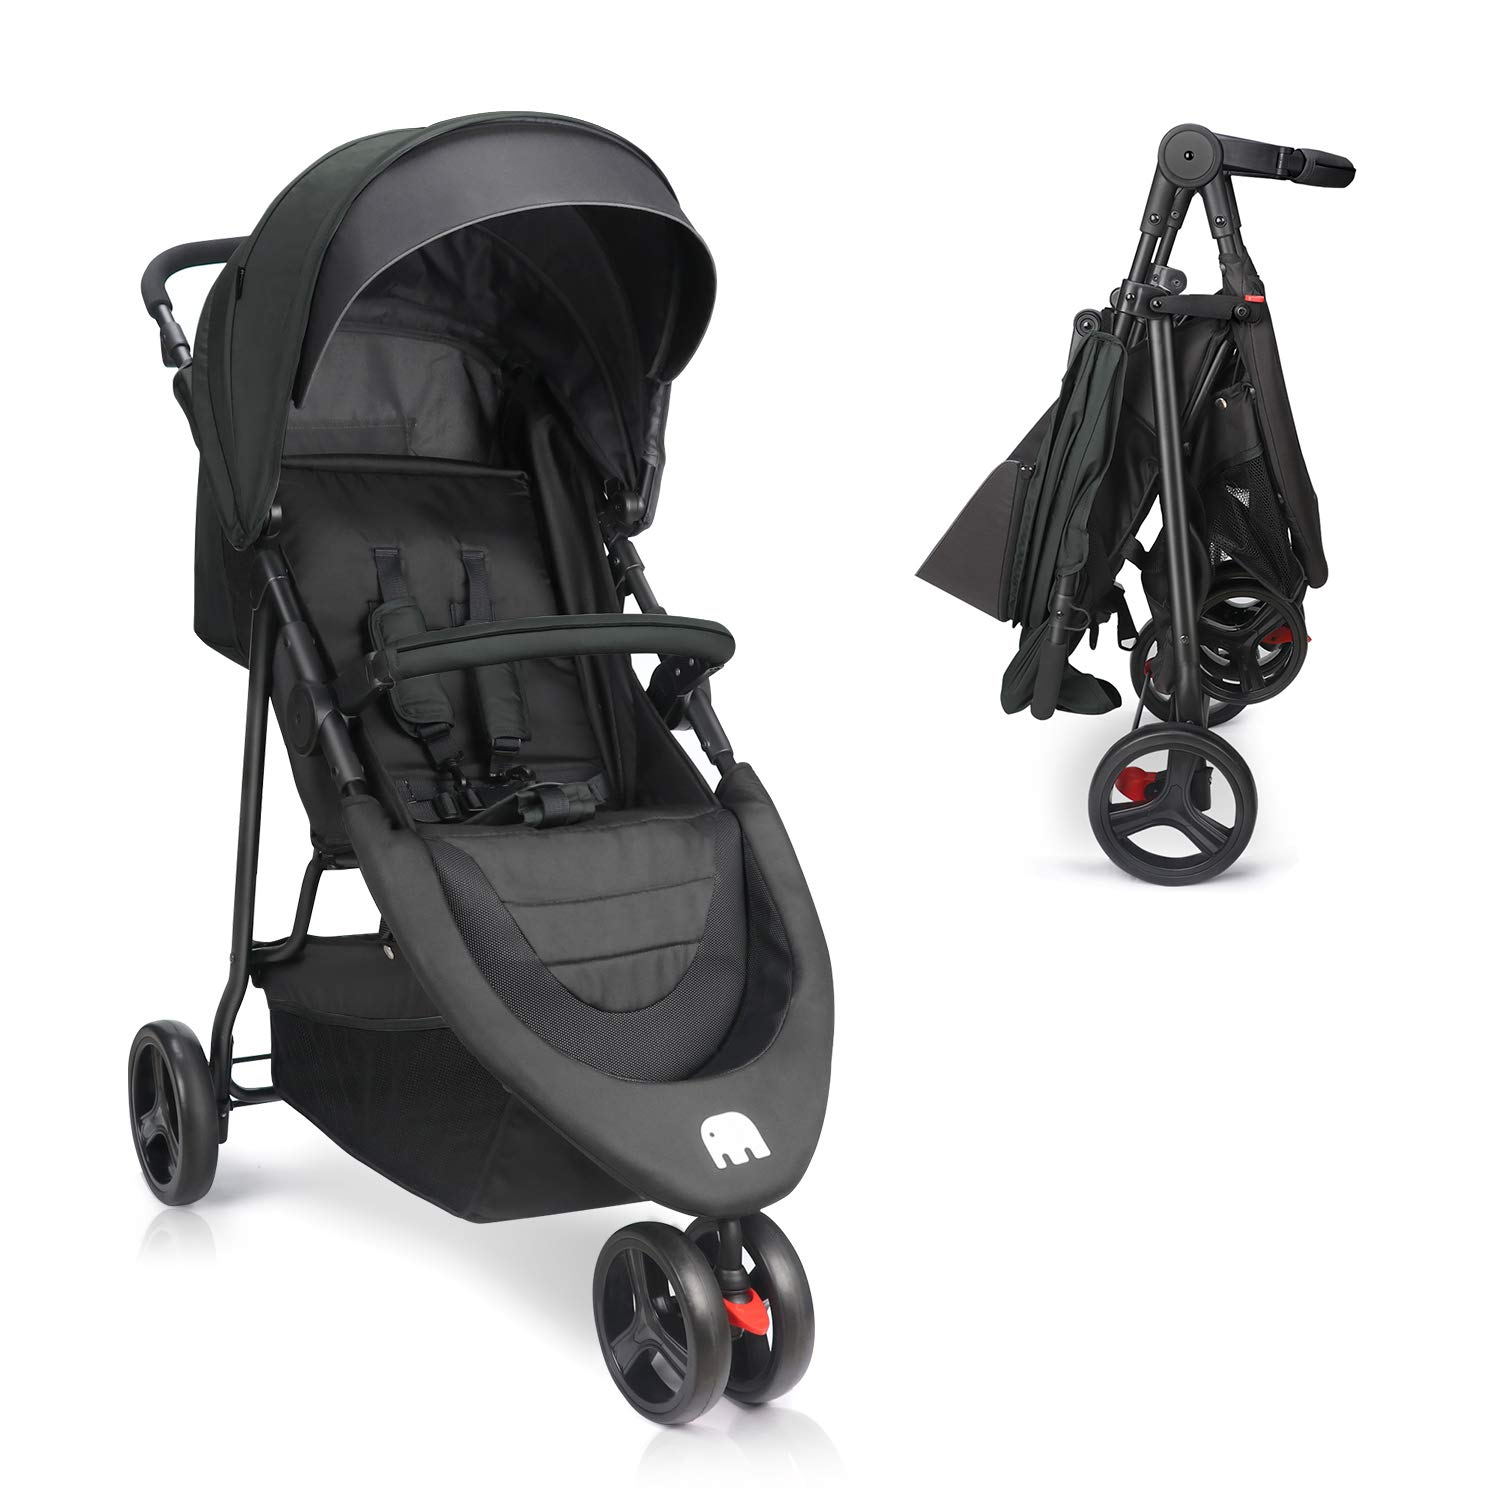 Baby Stroller, Meinkind Foldable Jogging Stroller Lightweight Portable Stroller Baby Jogger Stroller with UPF 50 Canopy, 3 Anti-Slip Wheels, Front Wheel Swivel Lock, Safety Belt, Up to 33 lbs Kid